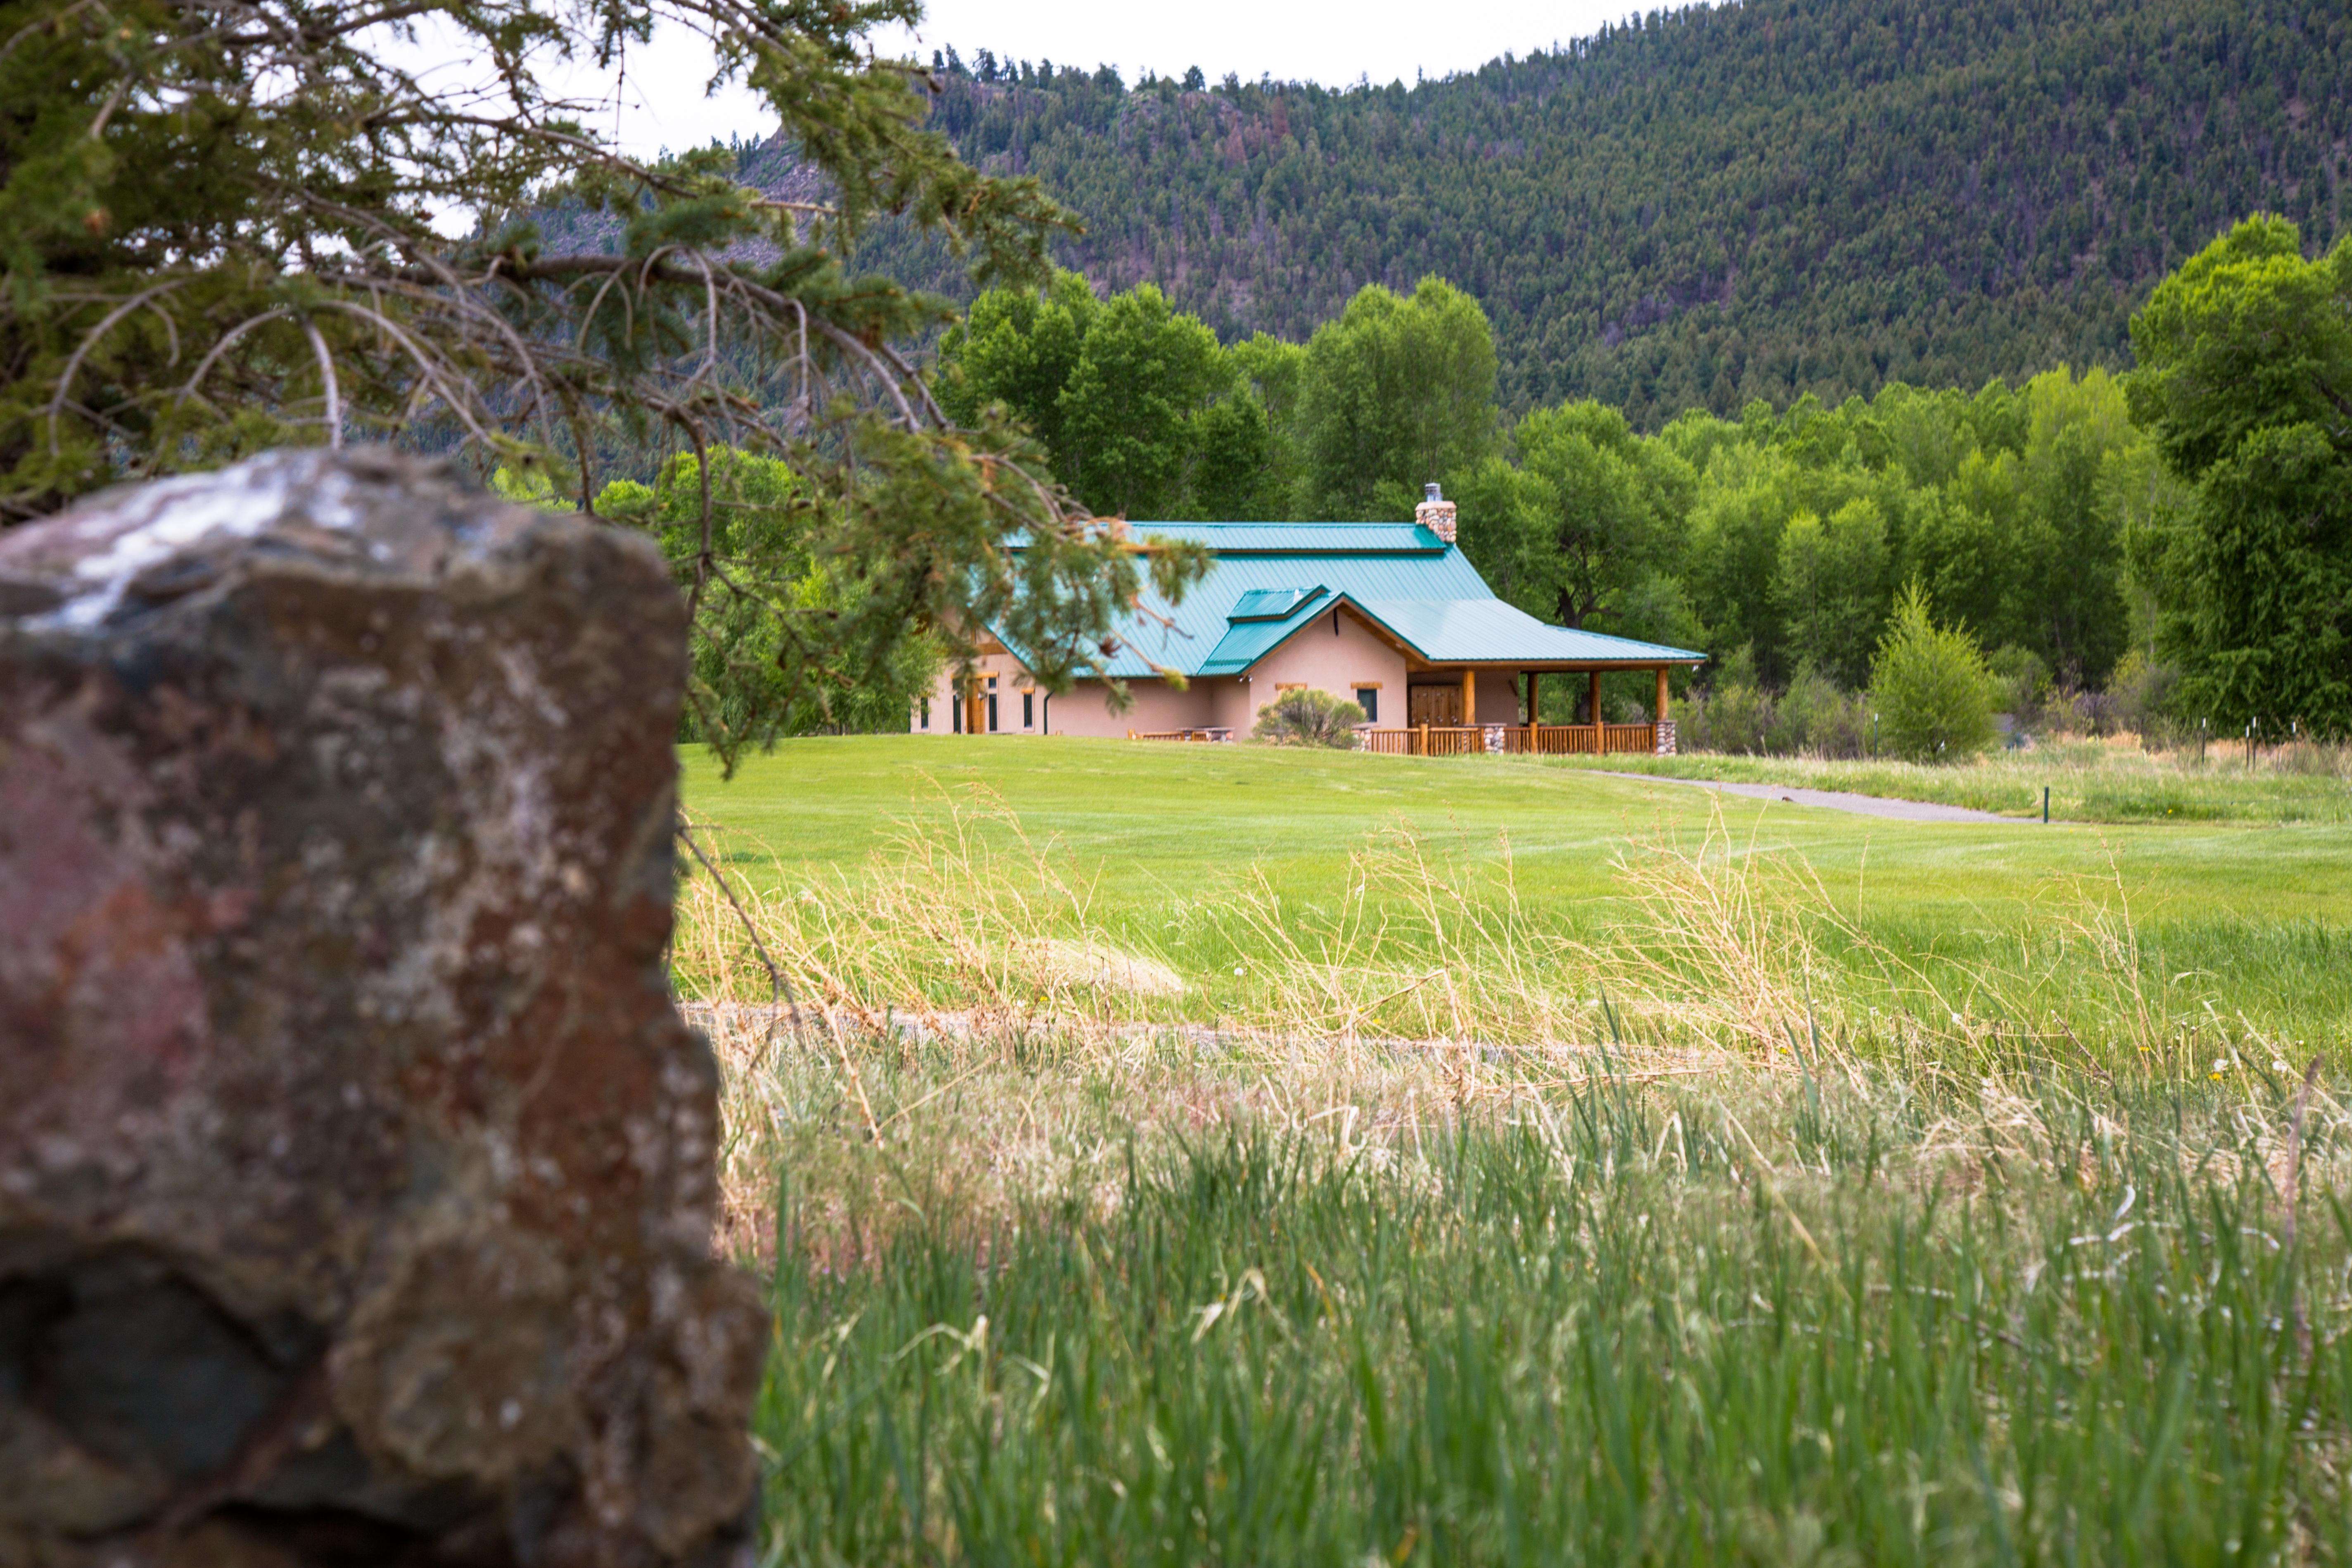 Rio Grande Club fishing lodge located on a green golf course